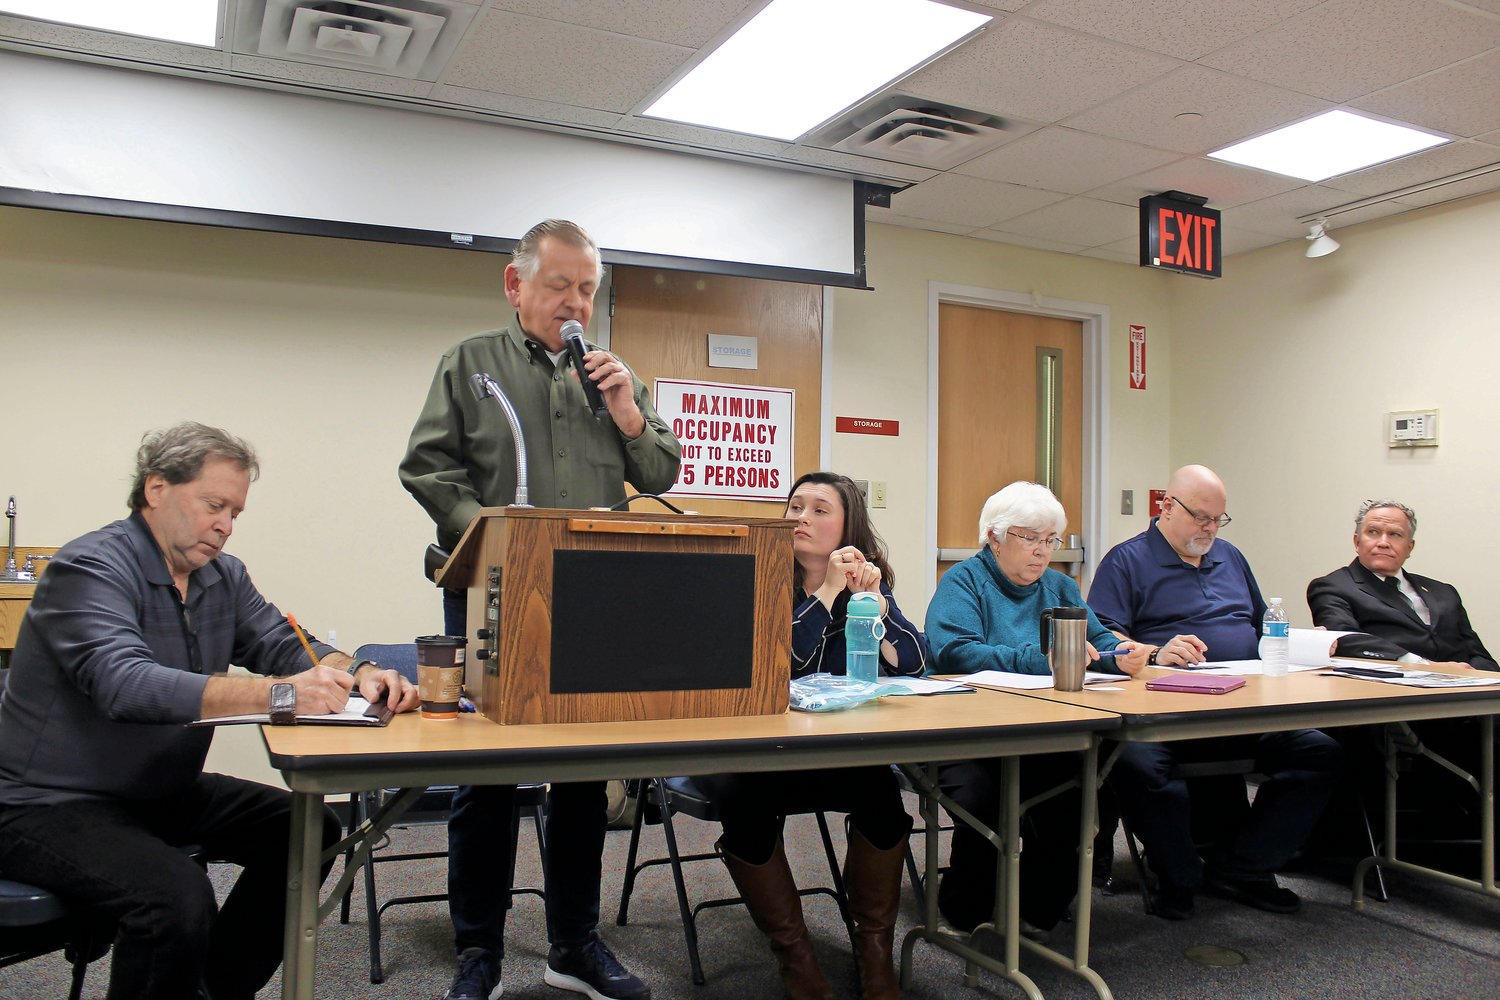 Bill Youngfert, second from left, led the meeting with, from left, Frank Culmone, Katherine Tarascio, Nancy Youngfert, Carl Gerrato and Joseph Camolli.